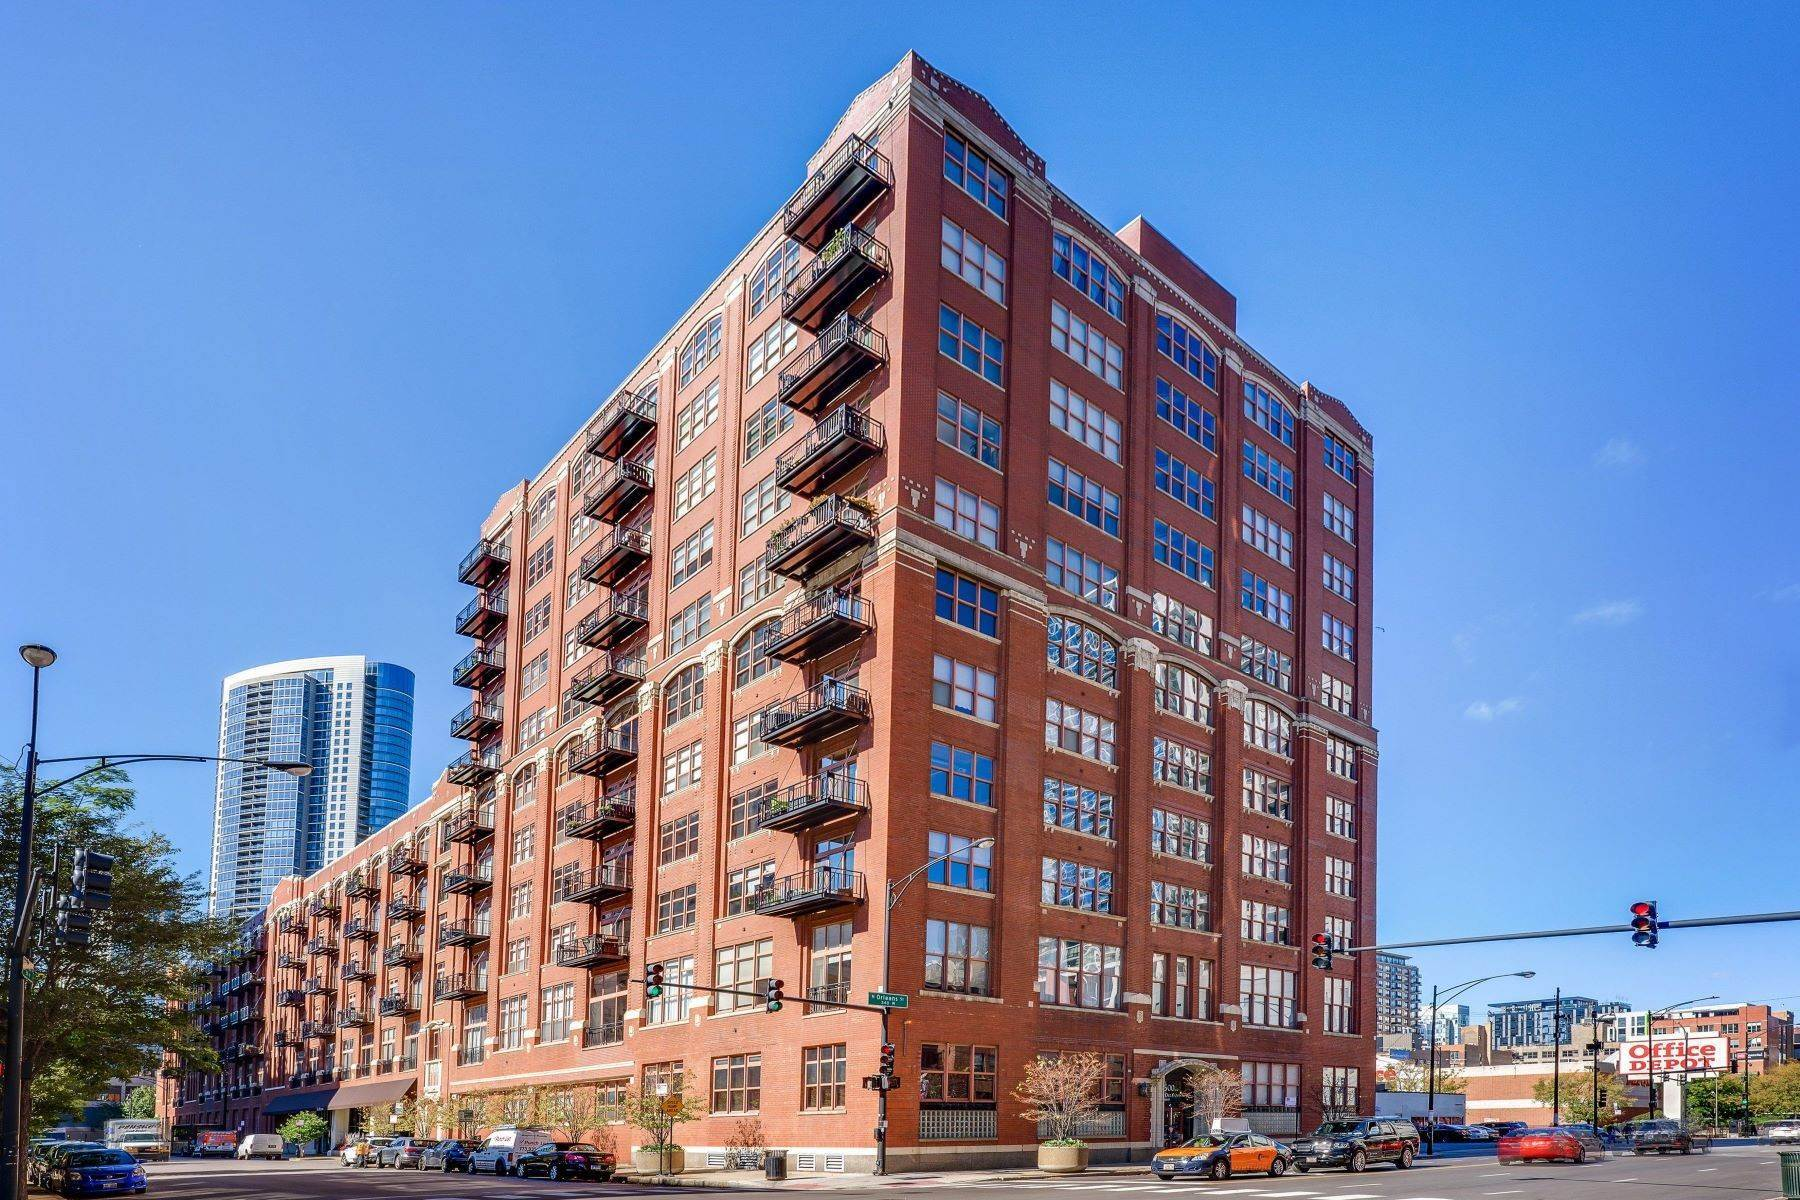 Duplex Homes for Sale at 360 W Illinois Street Unit 611, Chicago, IL 60654 360 W Illinois Street, Unit 611 Chicago, Illinois 60654 United States